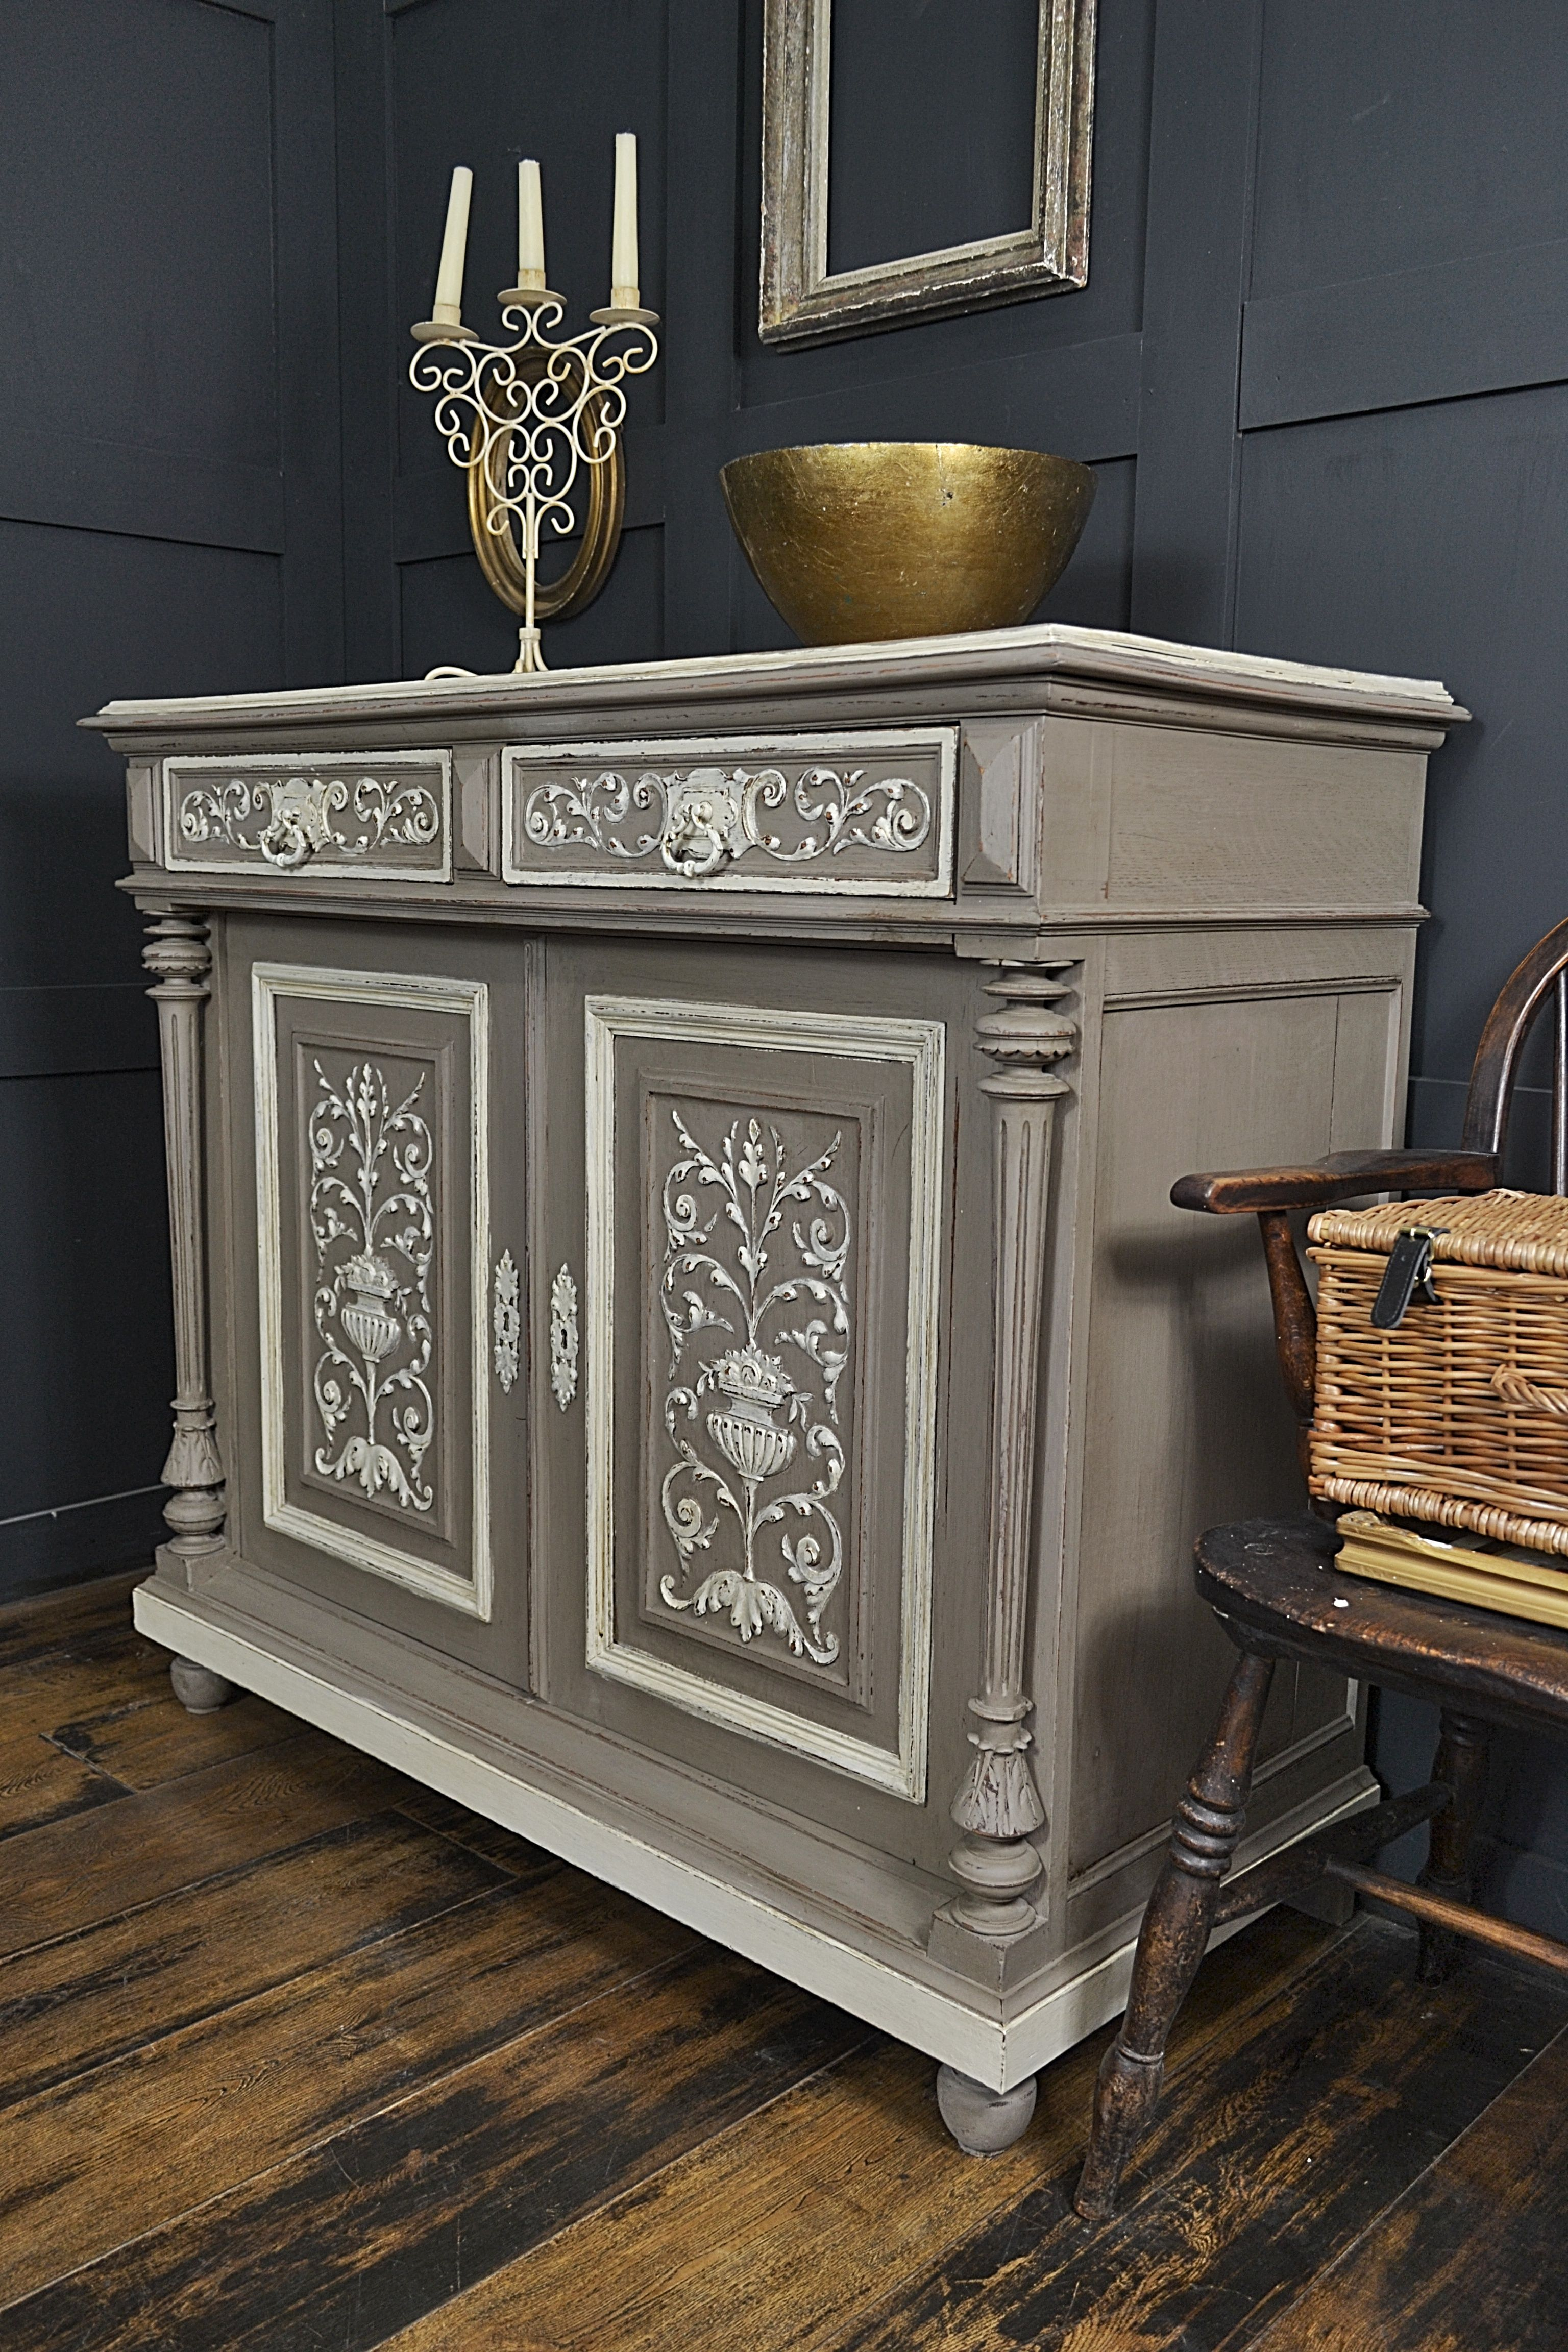 This Stunning Oak French Buffet Has Beautiful Carved Doors And Drawers And Oozes Parisian Style We Ve Mobilier De Salon Relooking De Mobilier Relooking Meuble